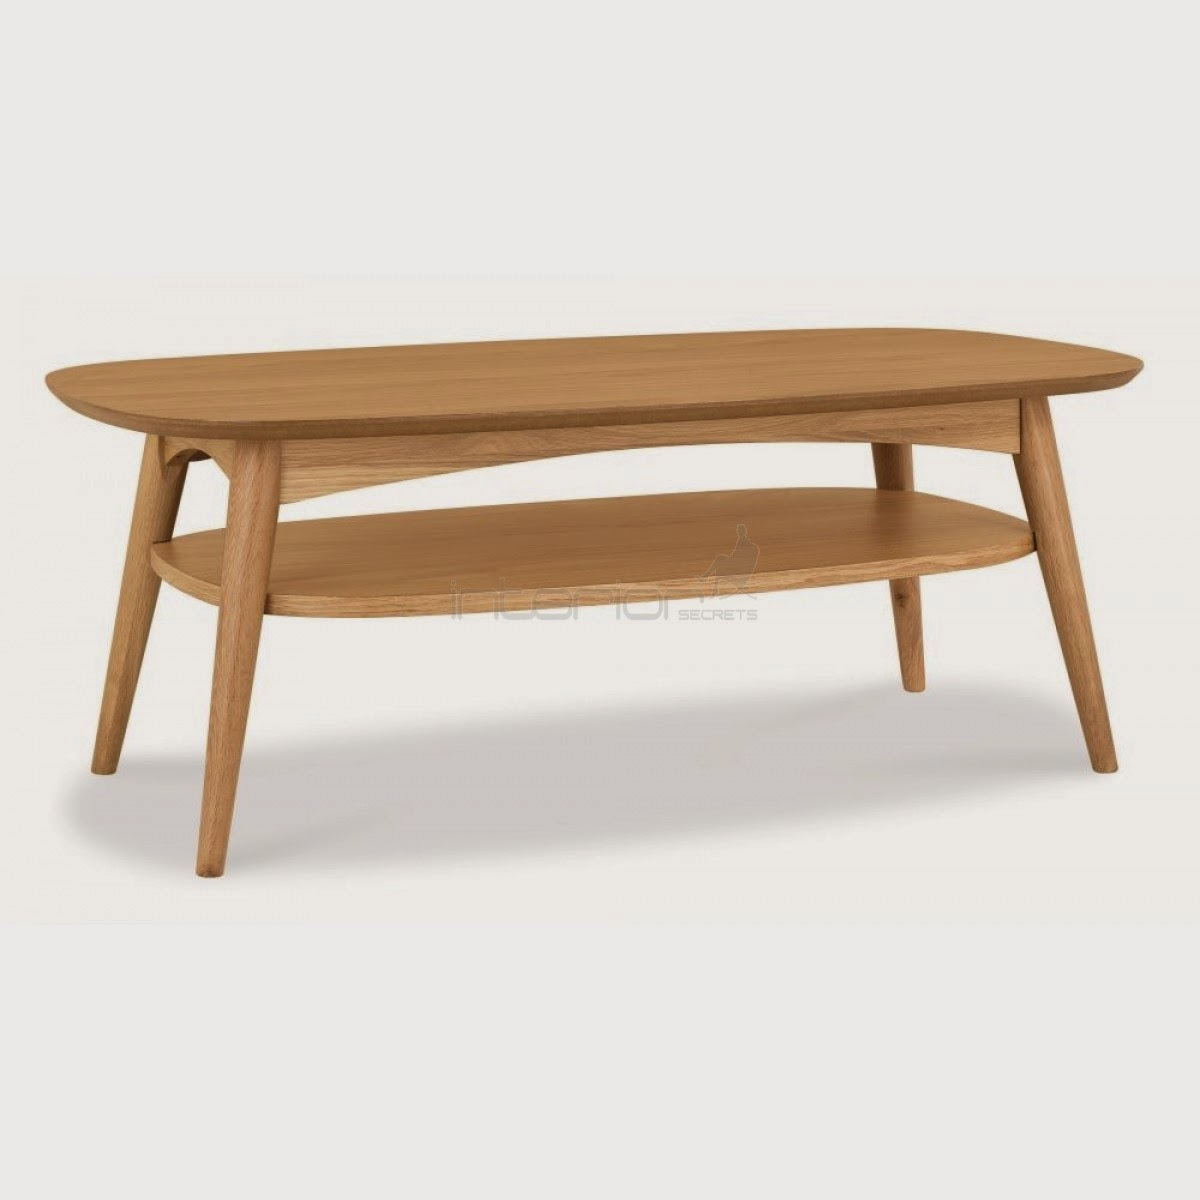 Solia Interiors: Wooden Coffee Tables Available In Australia